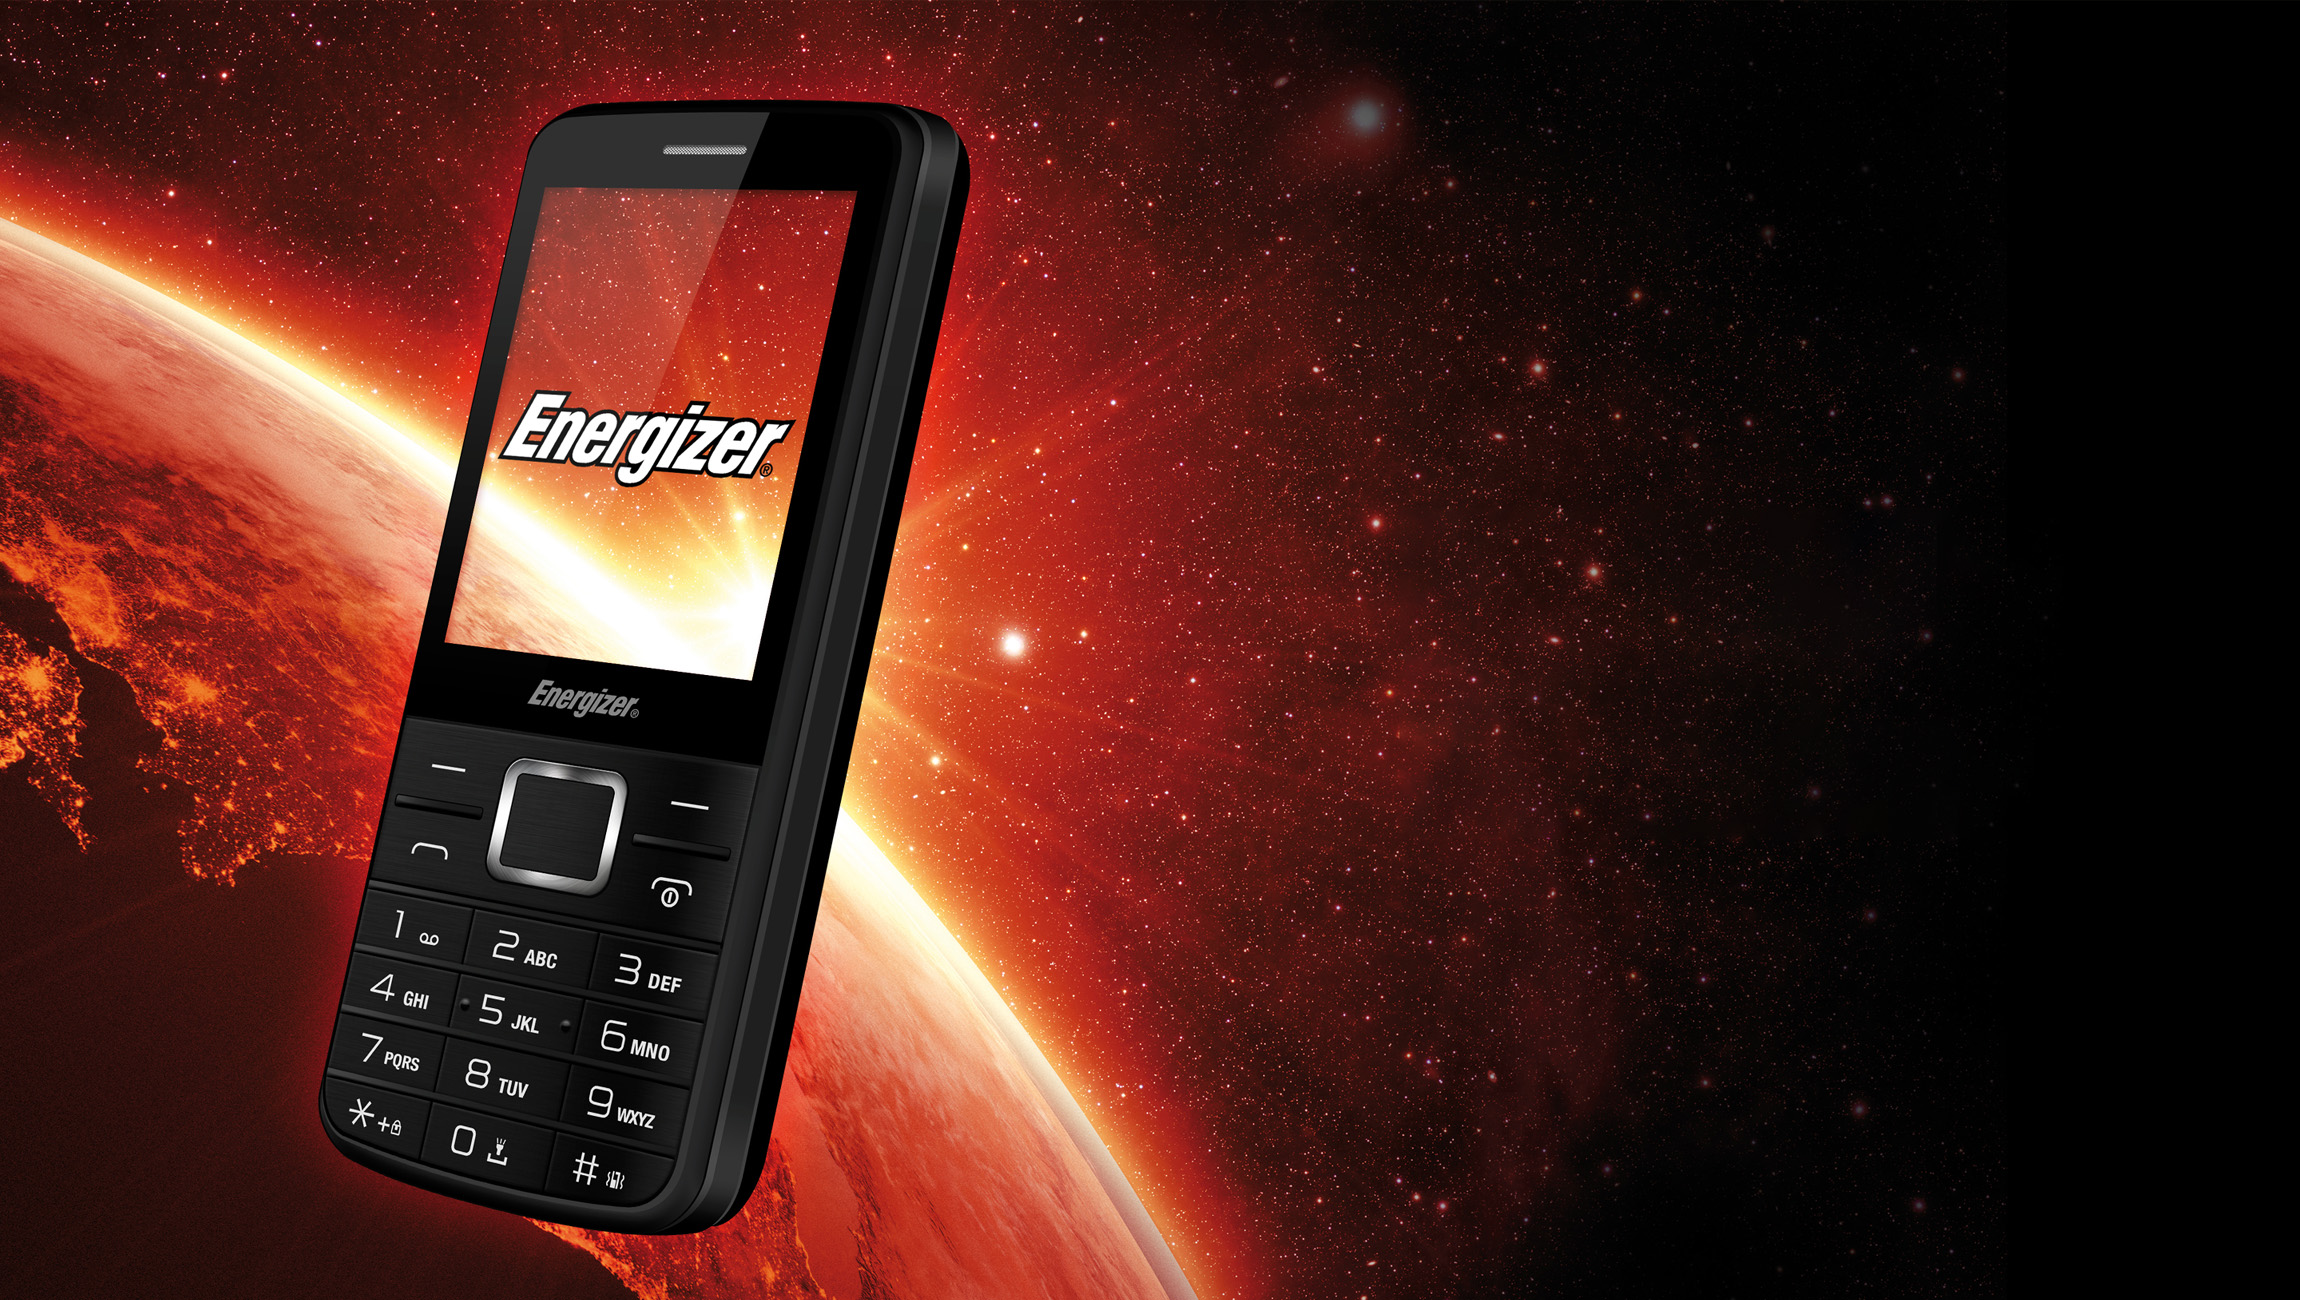 Energizer Power Max P20 - Share your power